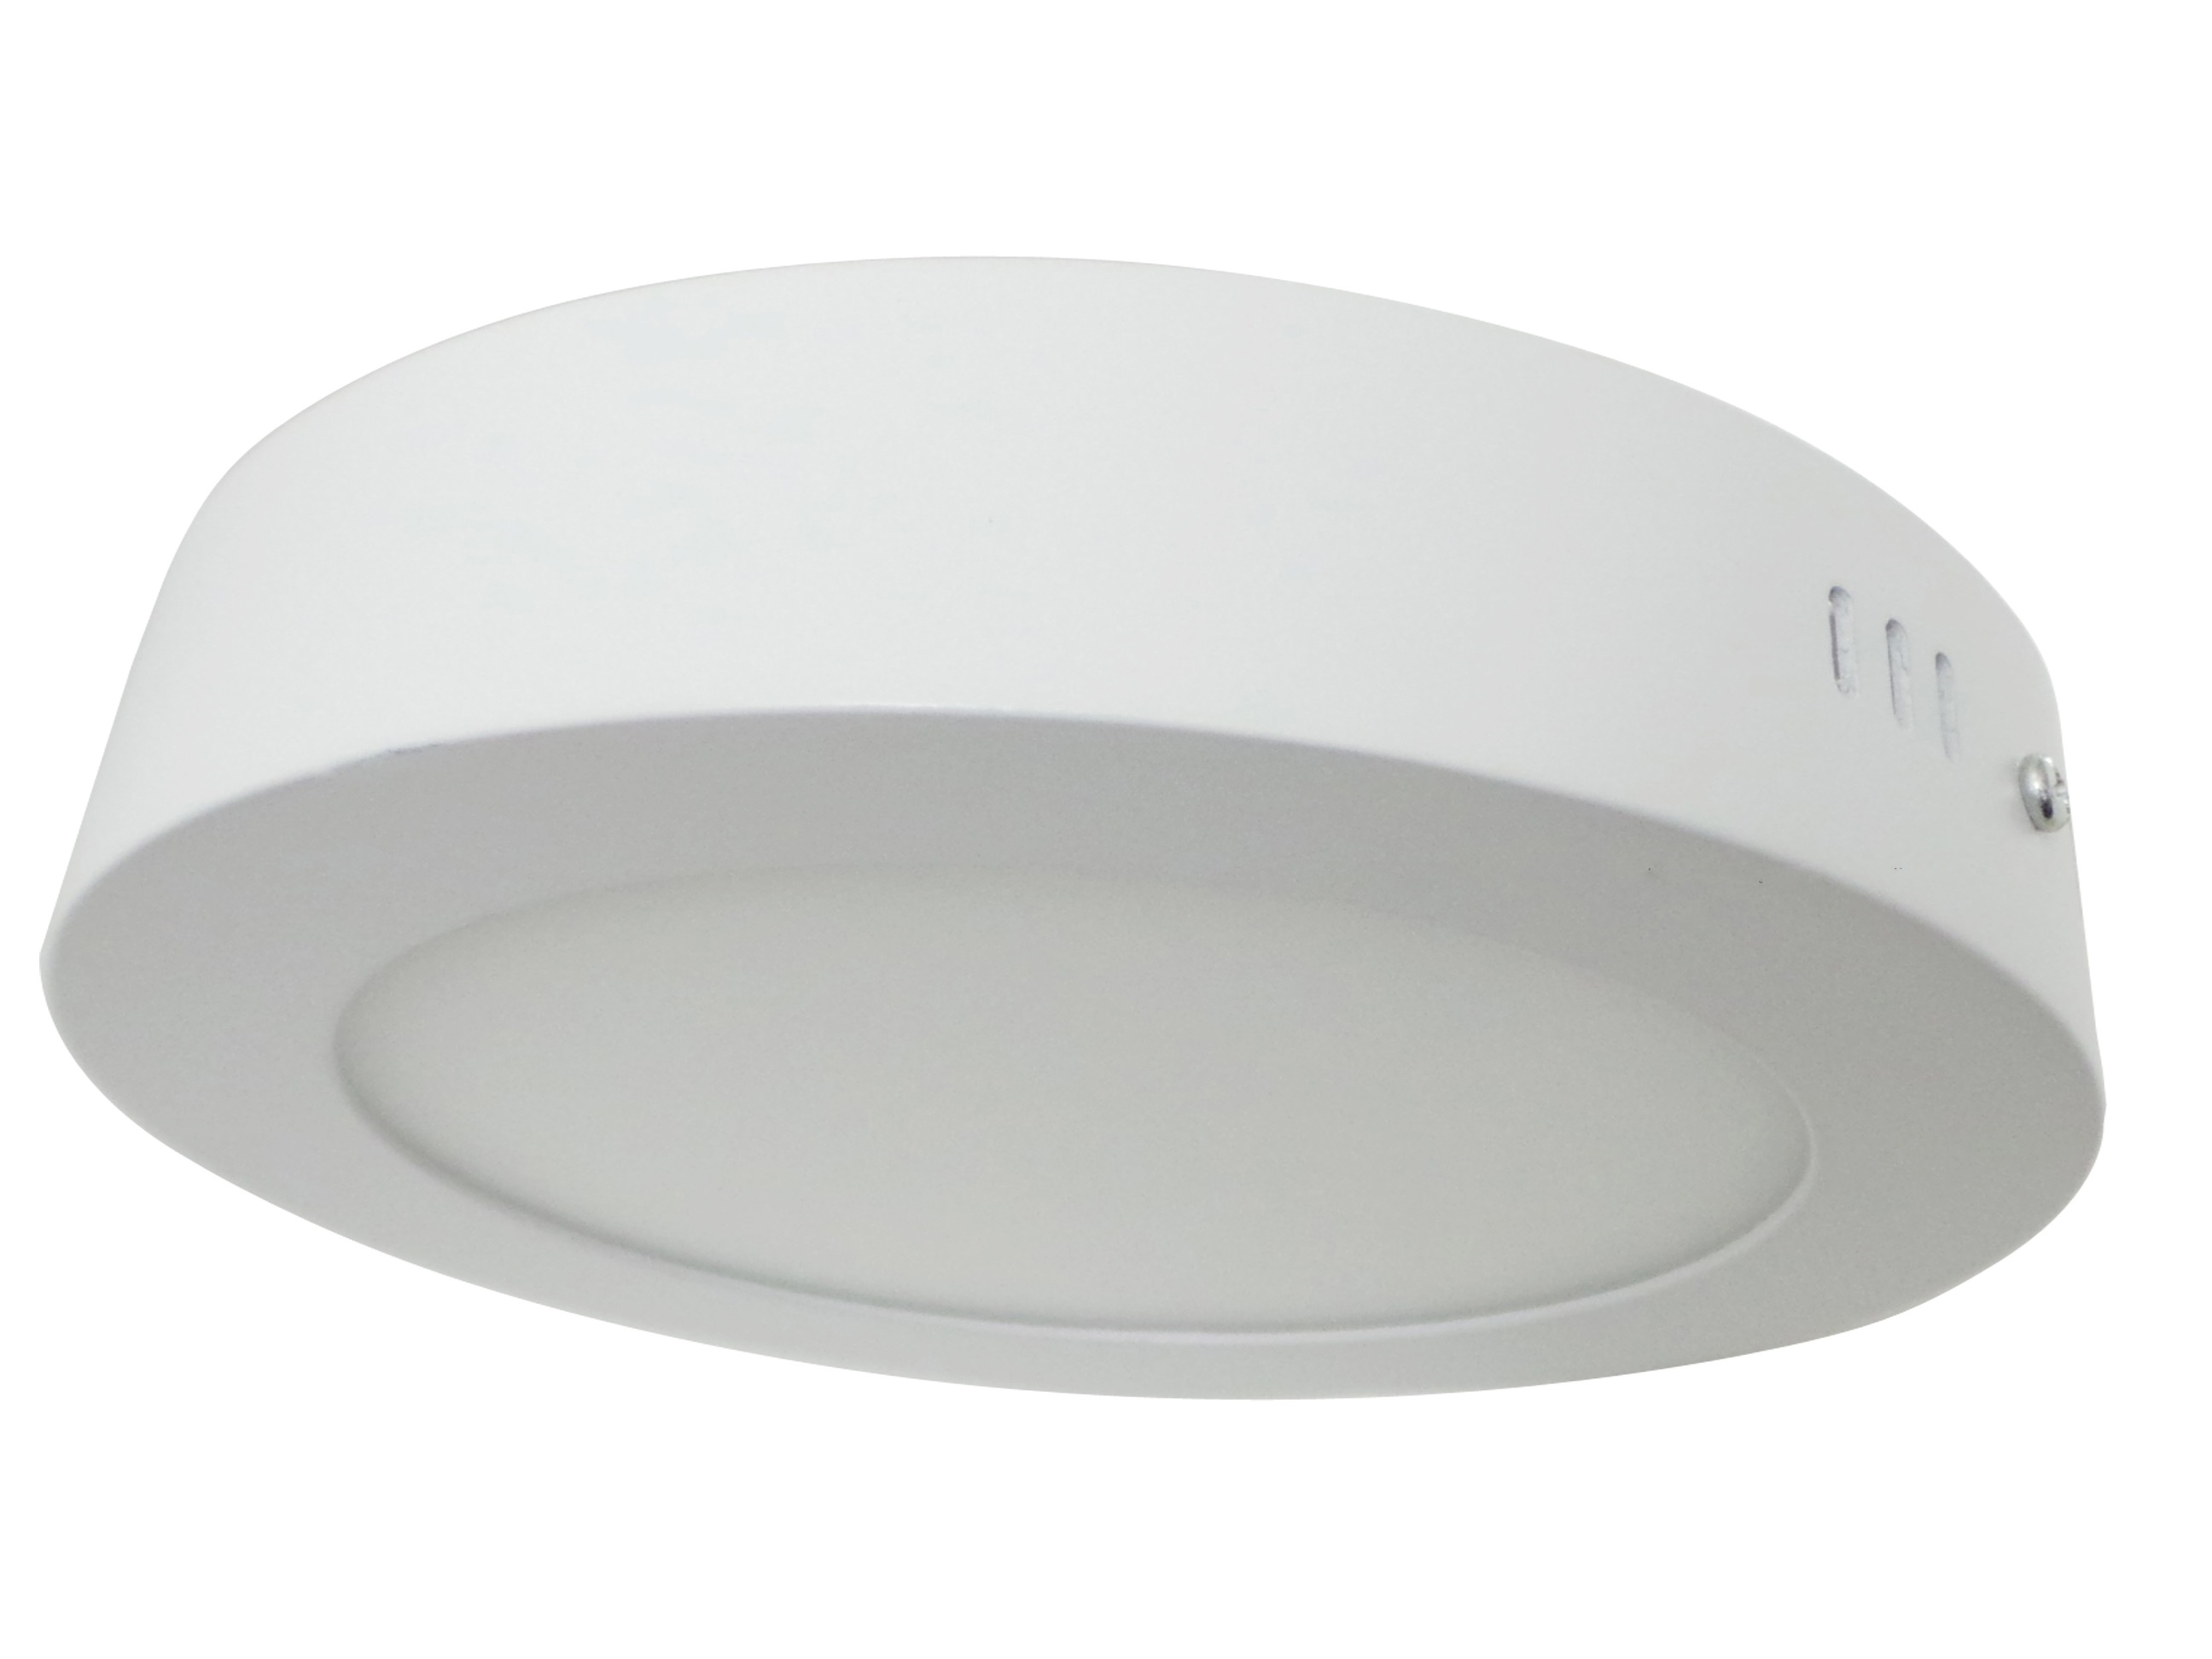 Lampade a soffitto a led dublight led soffitto xl with lampade a